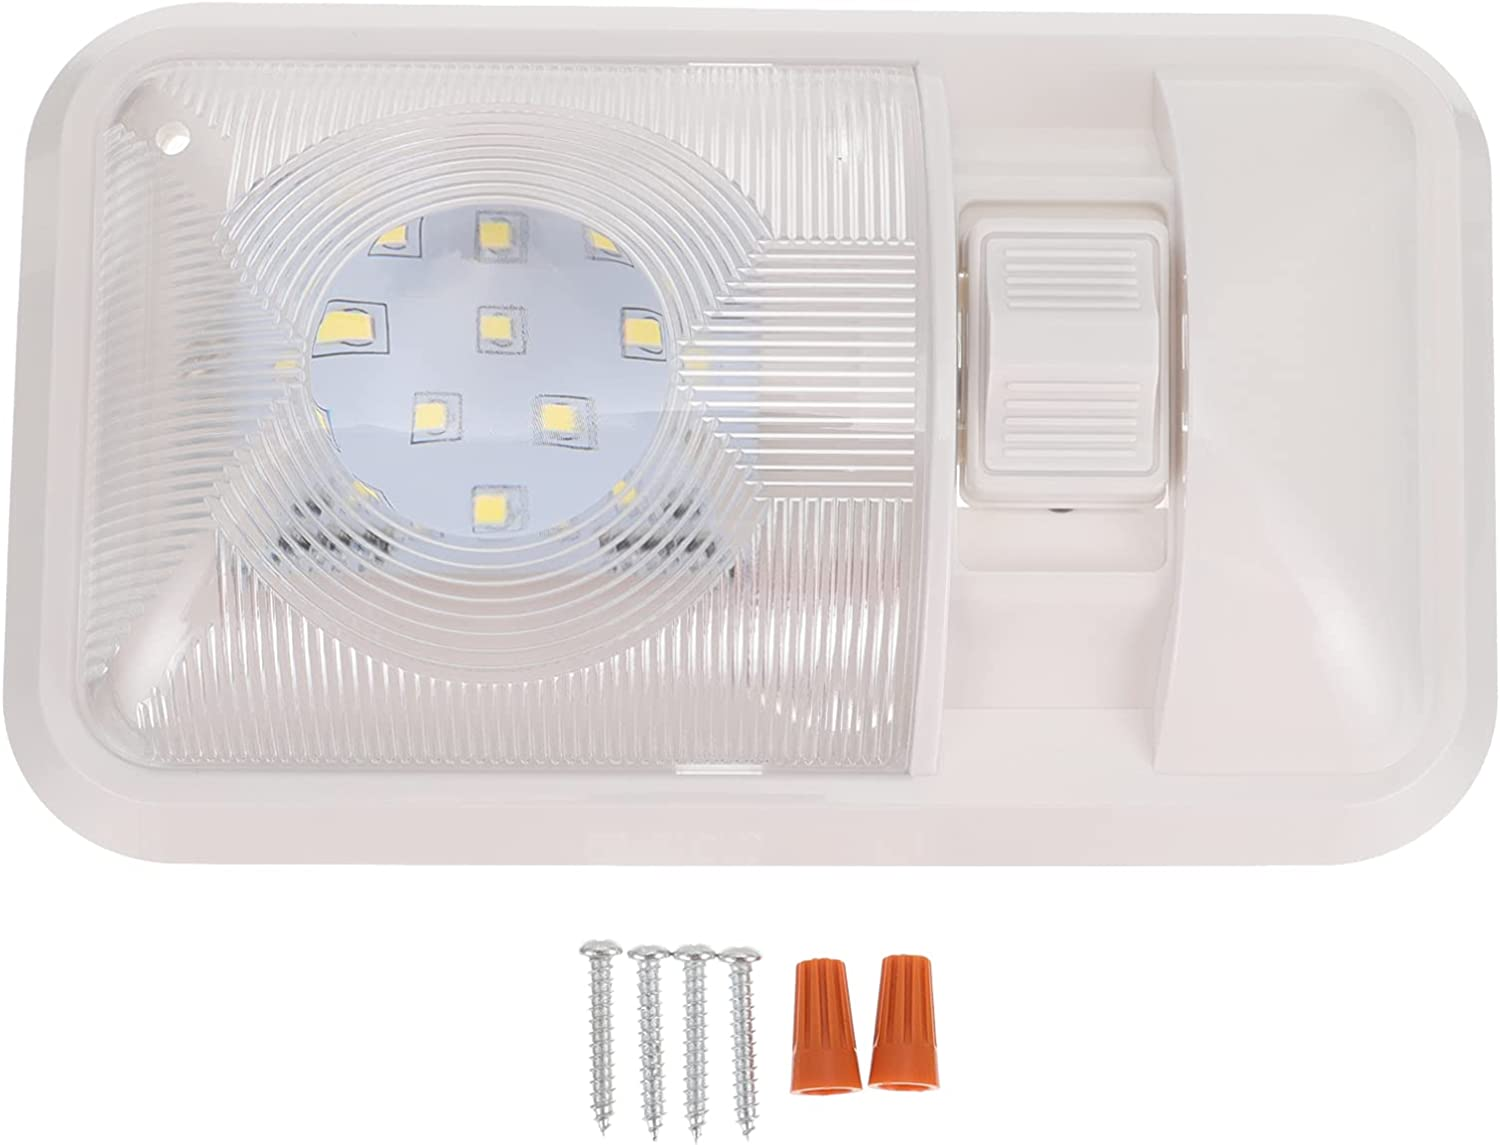 UKCOCO Free Shipping New RV Ceiling price Dome Light with Switc Interior LED Lighting